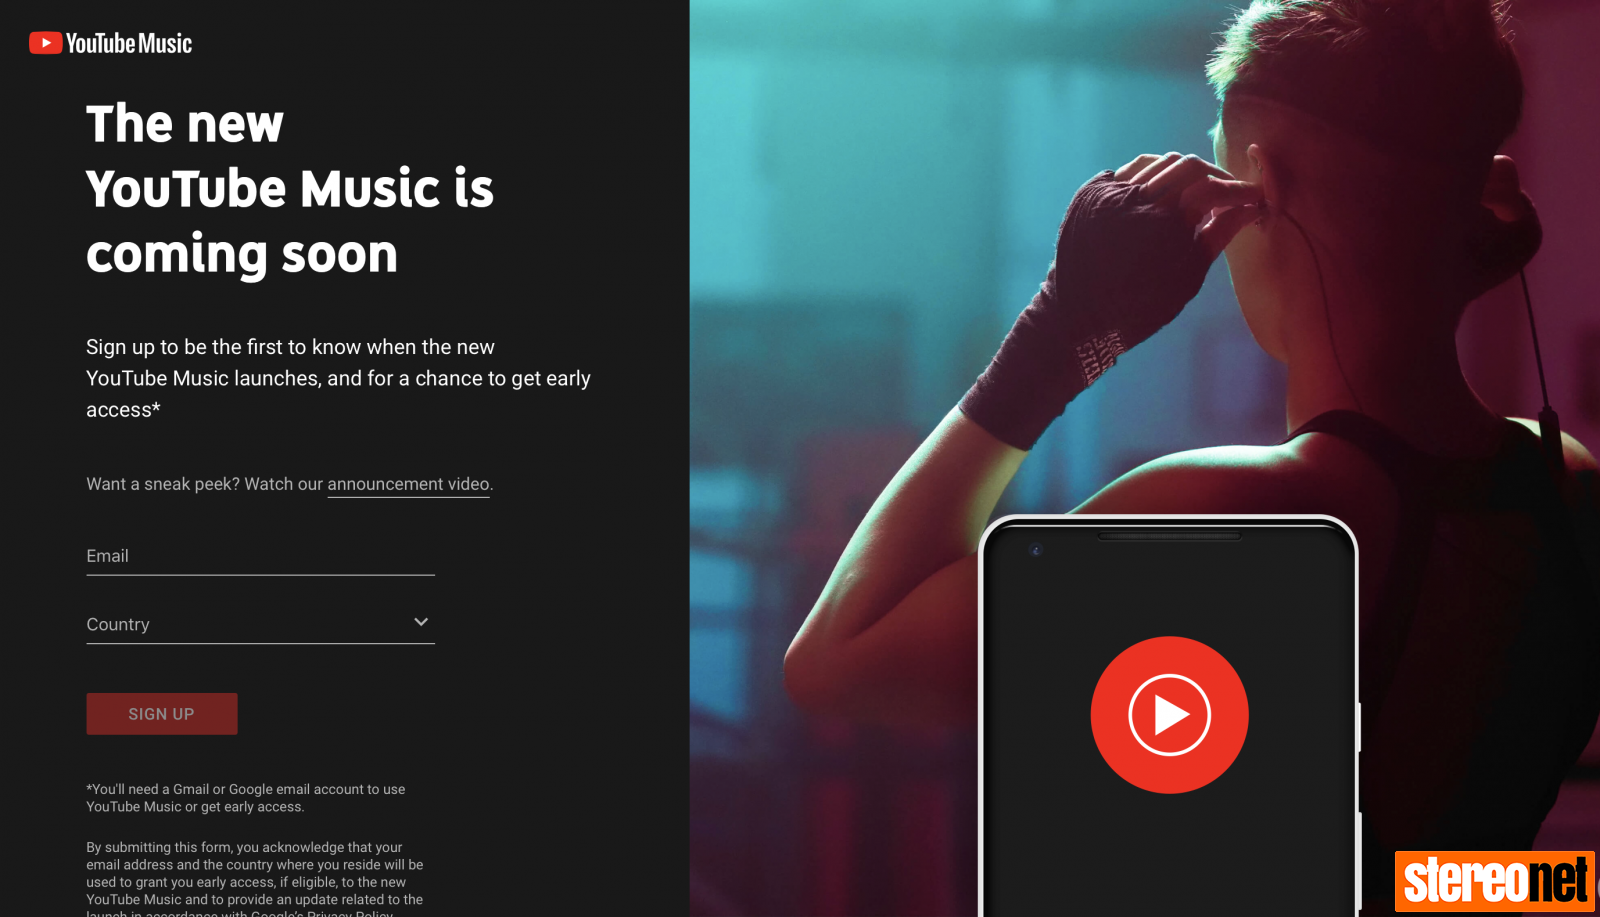 YouTube launches new YouTube Music streaming platform